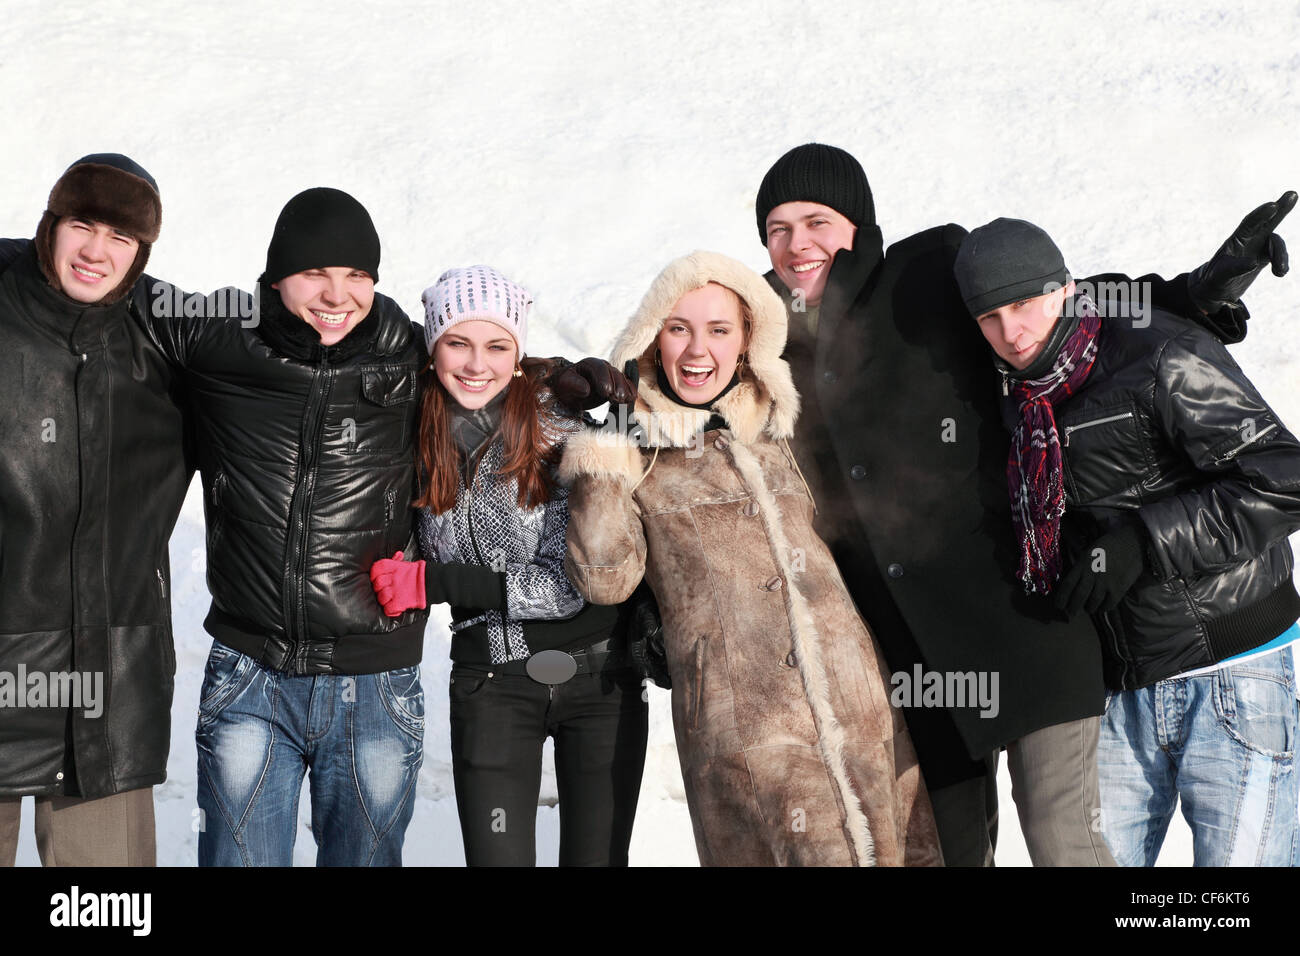 Students stand together hugging hands and laugh - Stock Image